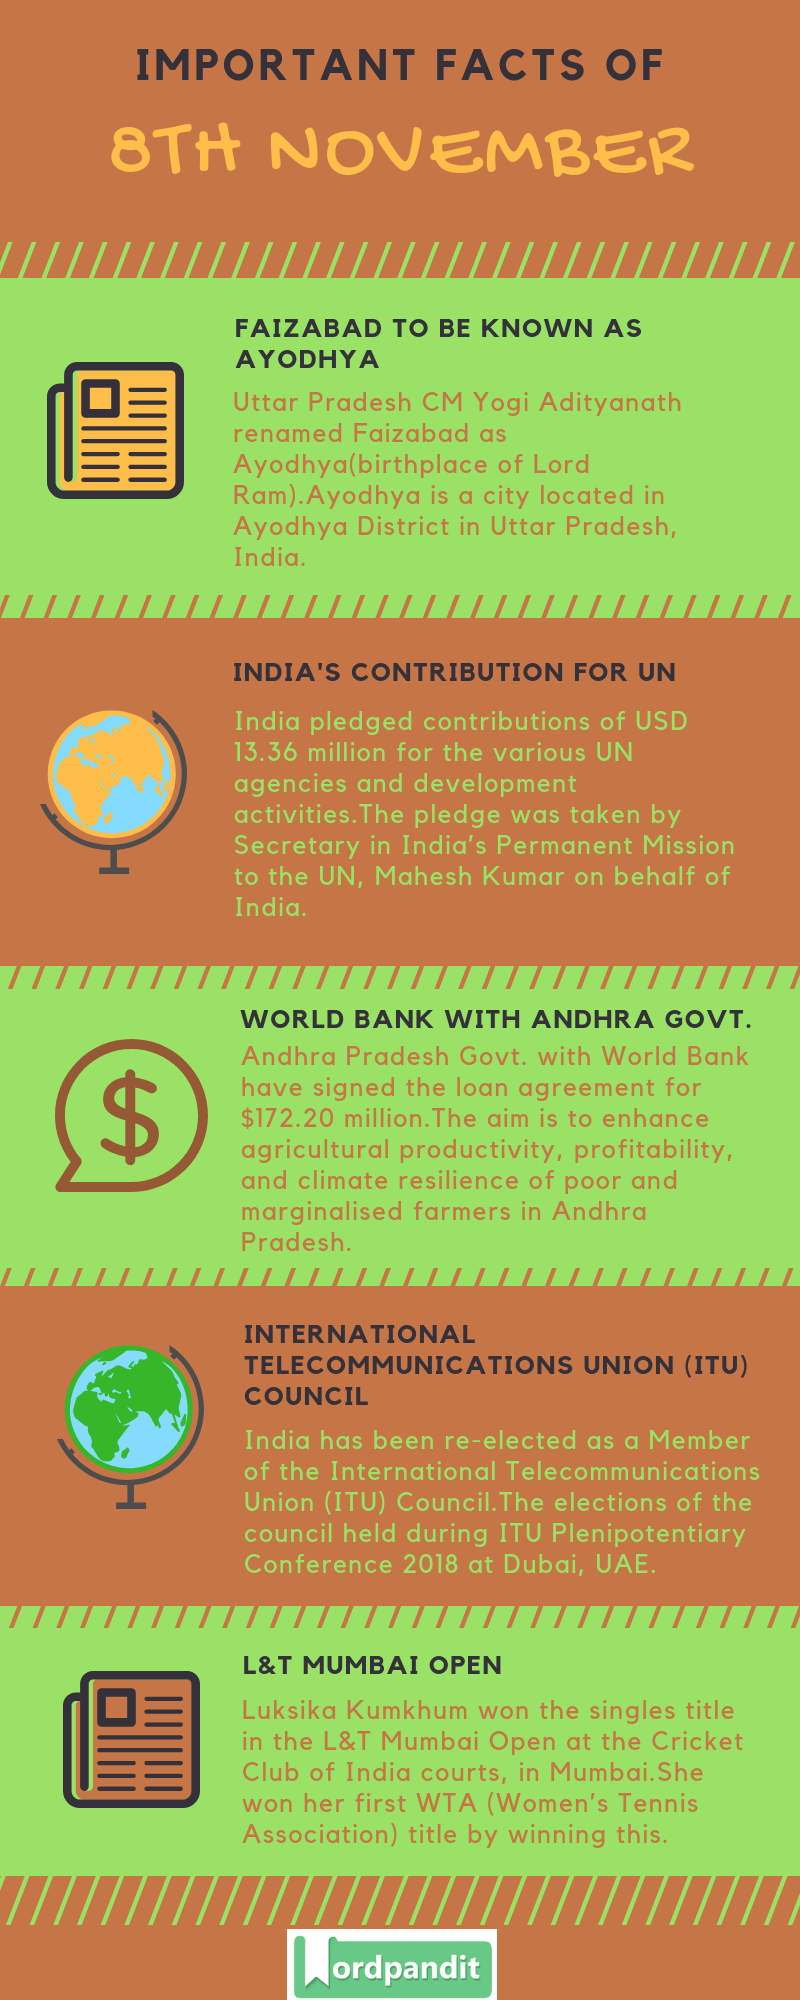 Daily Current Affairs 8 November 2018 Current Affairs Quiz 8 November 2018 Current Affairs Infographic